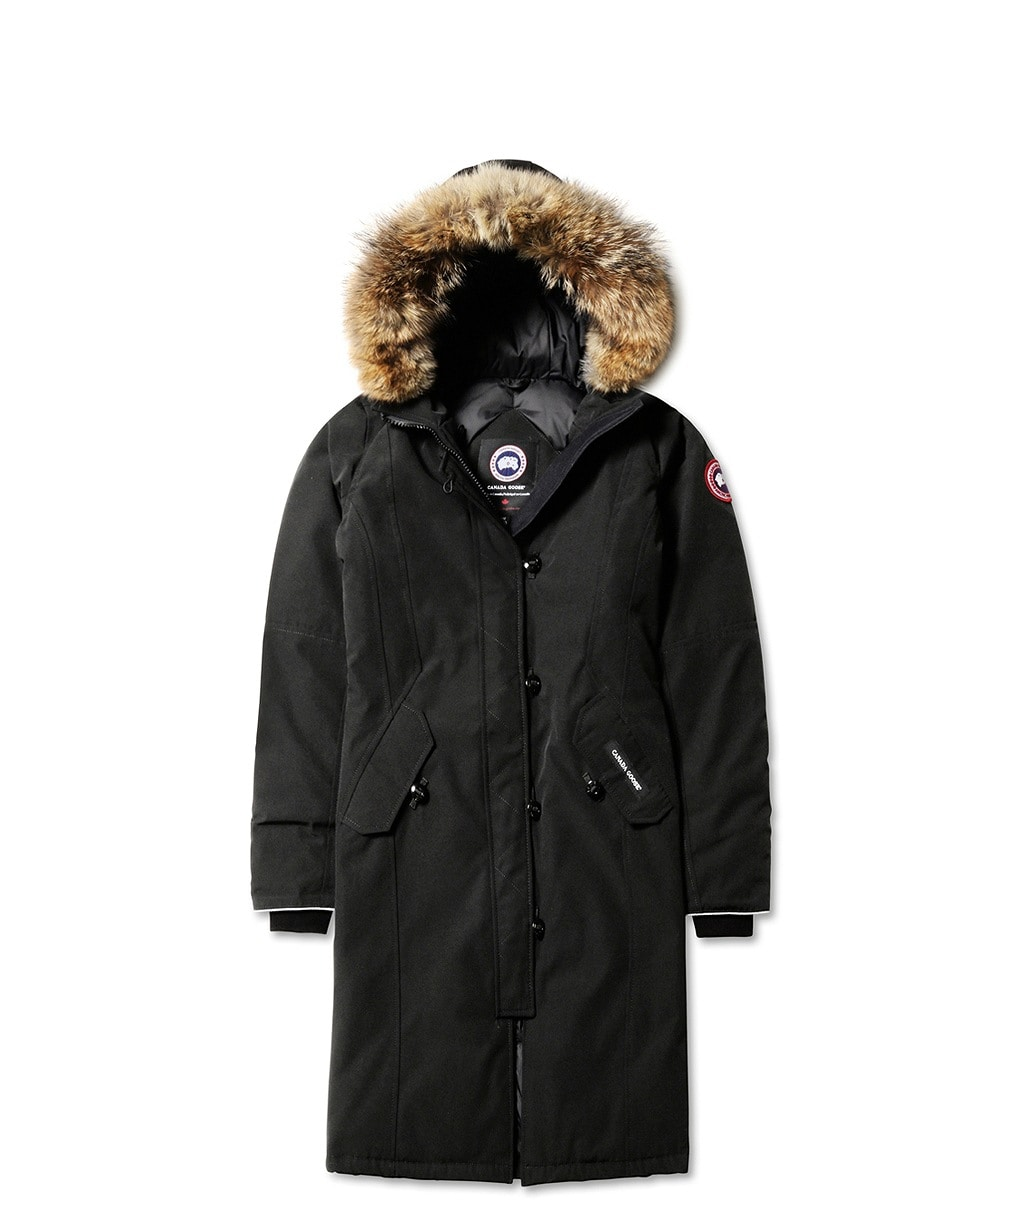 GIRLS BRITTANIA PARKA